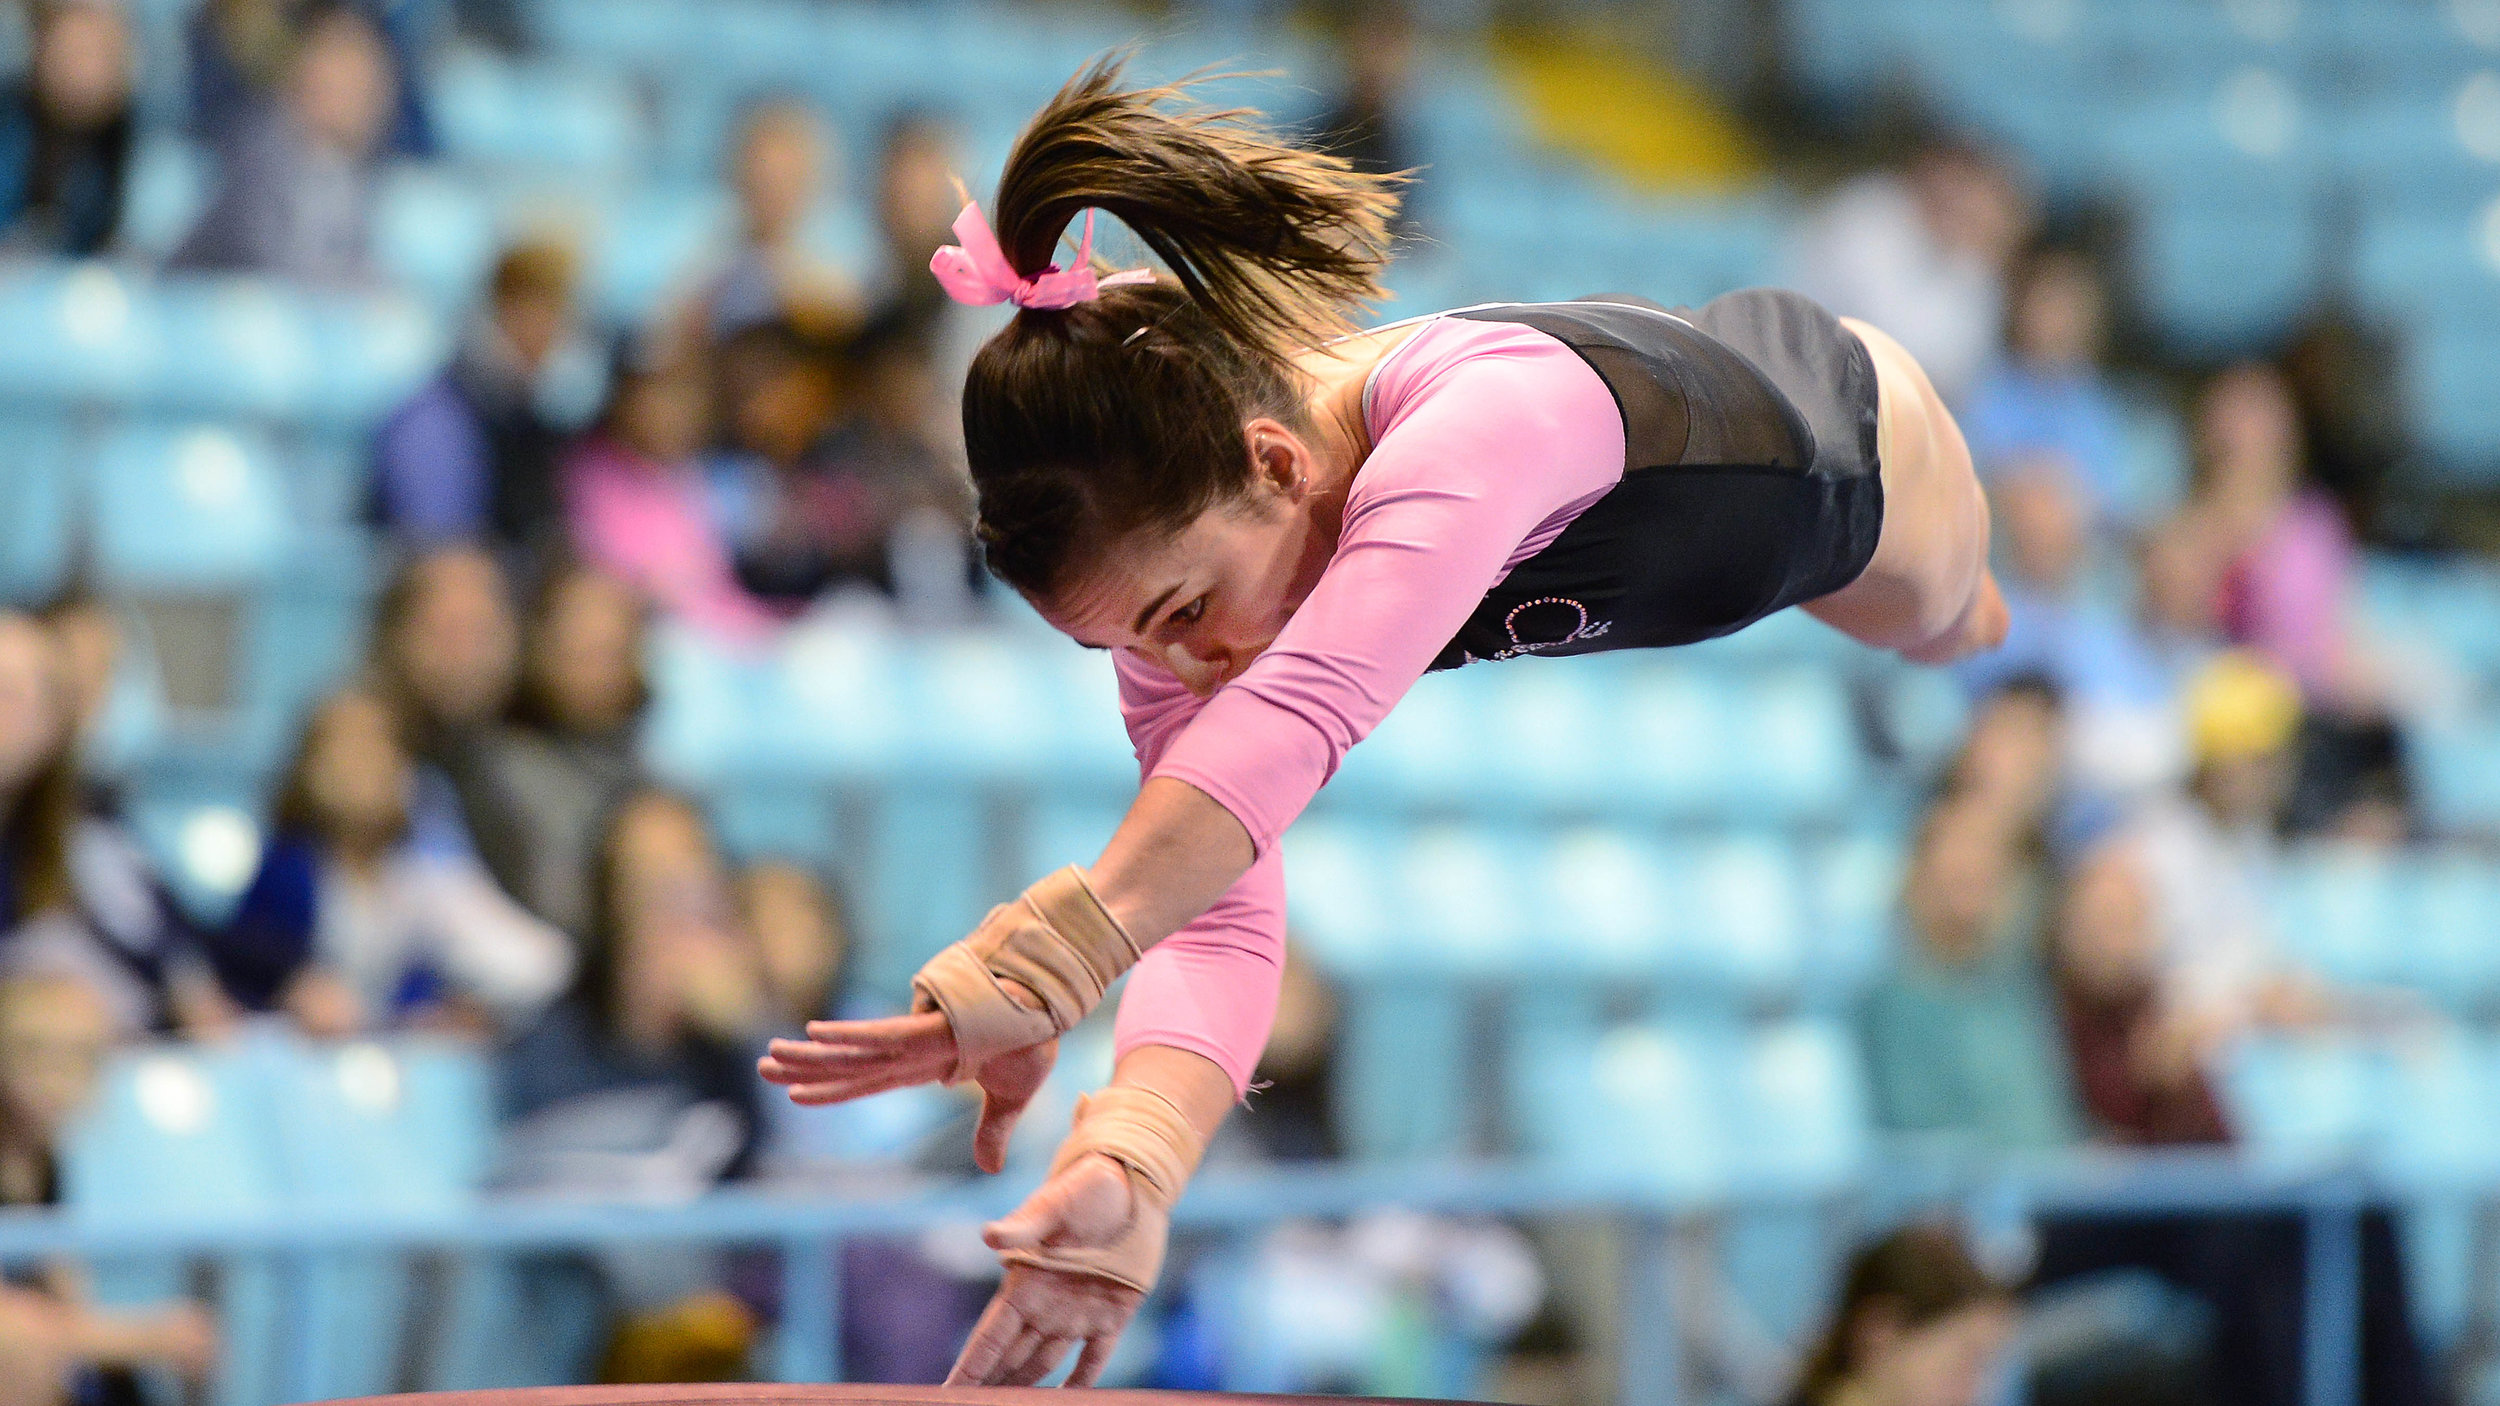 UNC gymnast Morgan Lane was the meet's only all-around competitor, scoring a 39.175 out of a perfect 40 on the day. The senior from Indiana placed in three of the four rotations | Photo courtest Jeffrey A. Camarati (UNC Athletic Communications)